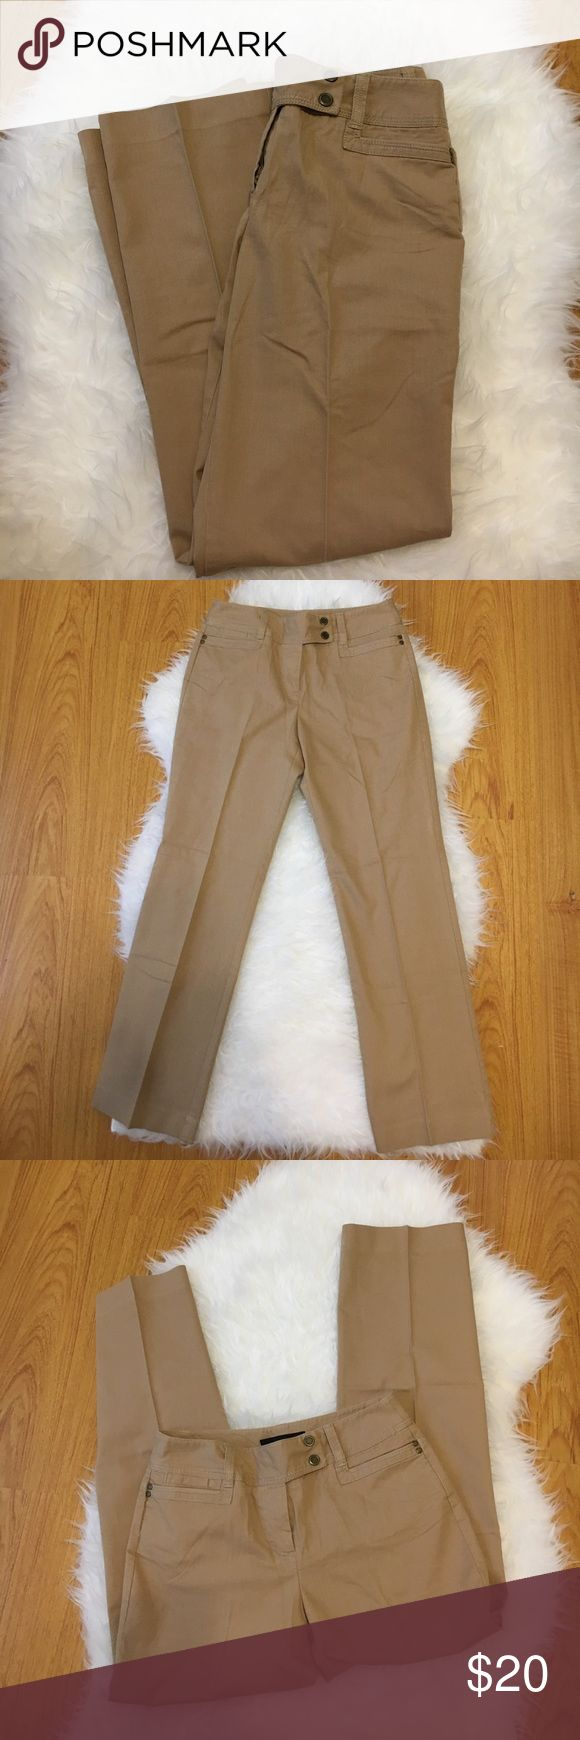 "Larry Levine Petite dress slacks for women 4P Larry Levine Petite dress slacks for women 4P  Excellent condition pre-loved dress pants for women in a size 4 Petite   Dress slacks consist of 77% cotton and 20% polyester and feature a creamy neutral tone of brown   Inseam measures approximately 27.5""  Item comes from a clean, smoke-free home Larry Levine Pants"